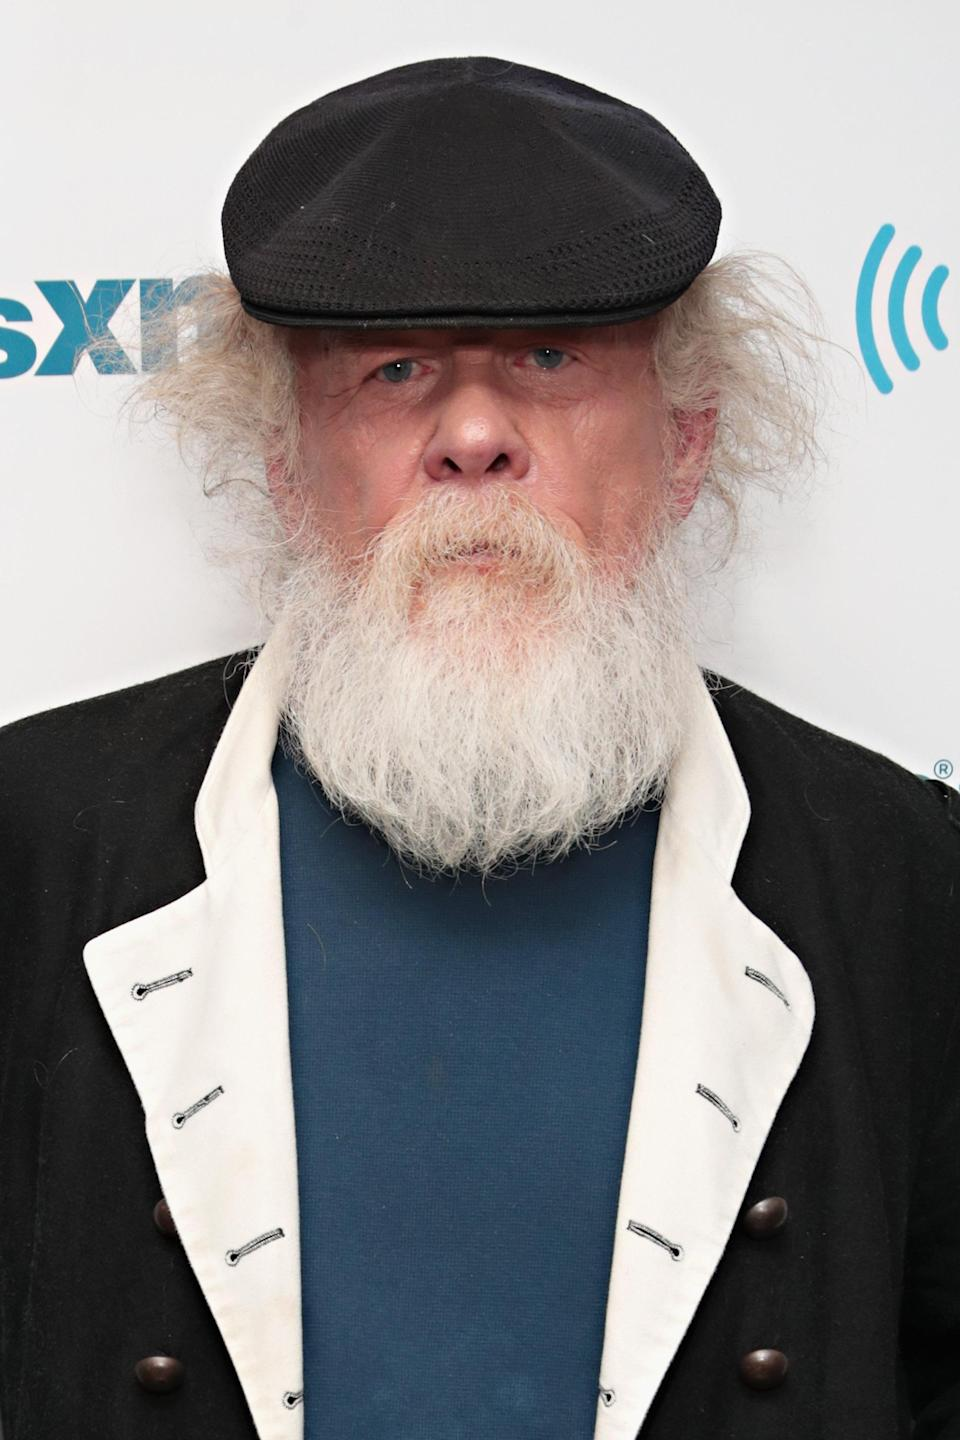 """Former """"Sexiest Man Alive"""" Nick Nolte, seen here at the SiriusXM Studios on March 12, 2018, is looking like Santa Claus these days. (Photo: Cindy Ord/Getty Images)"""